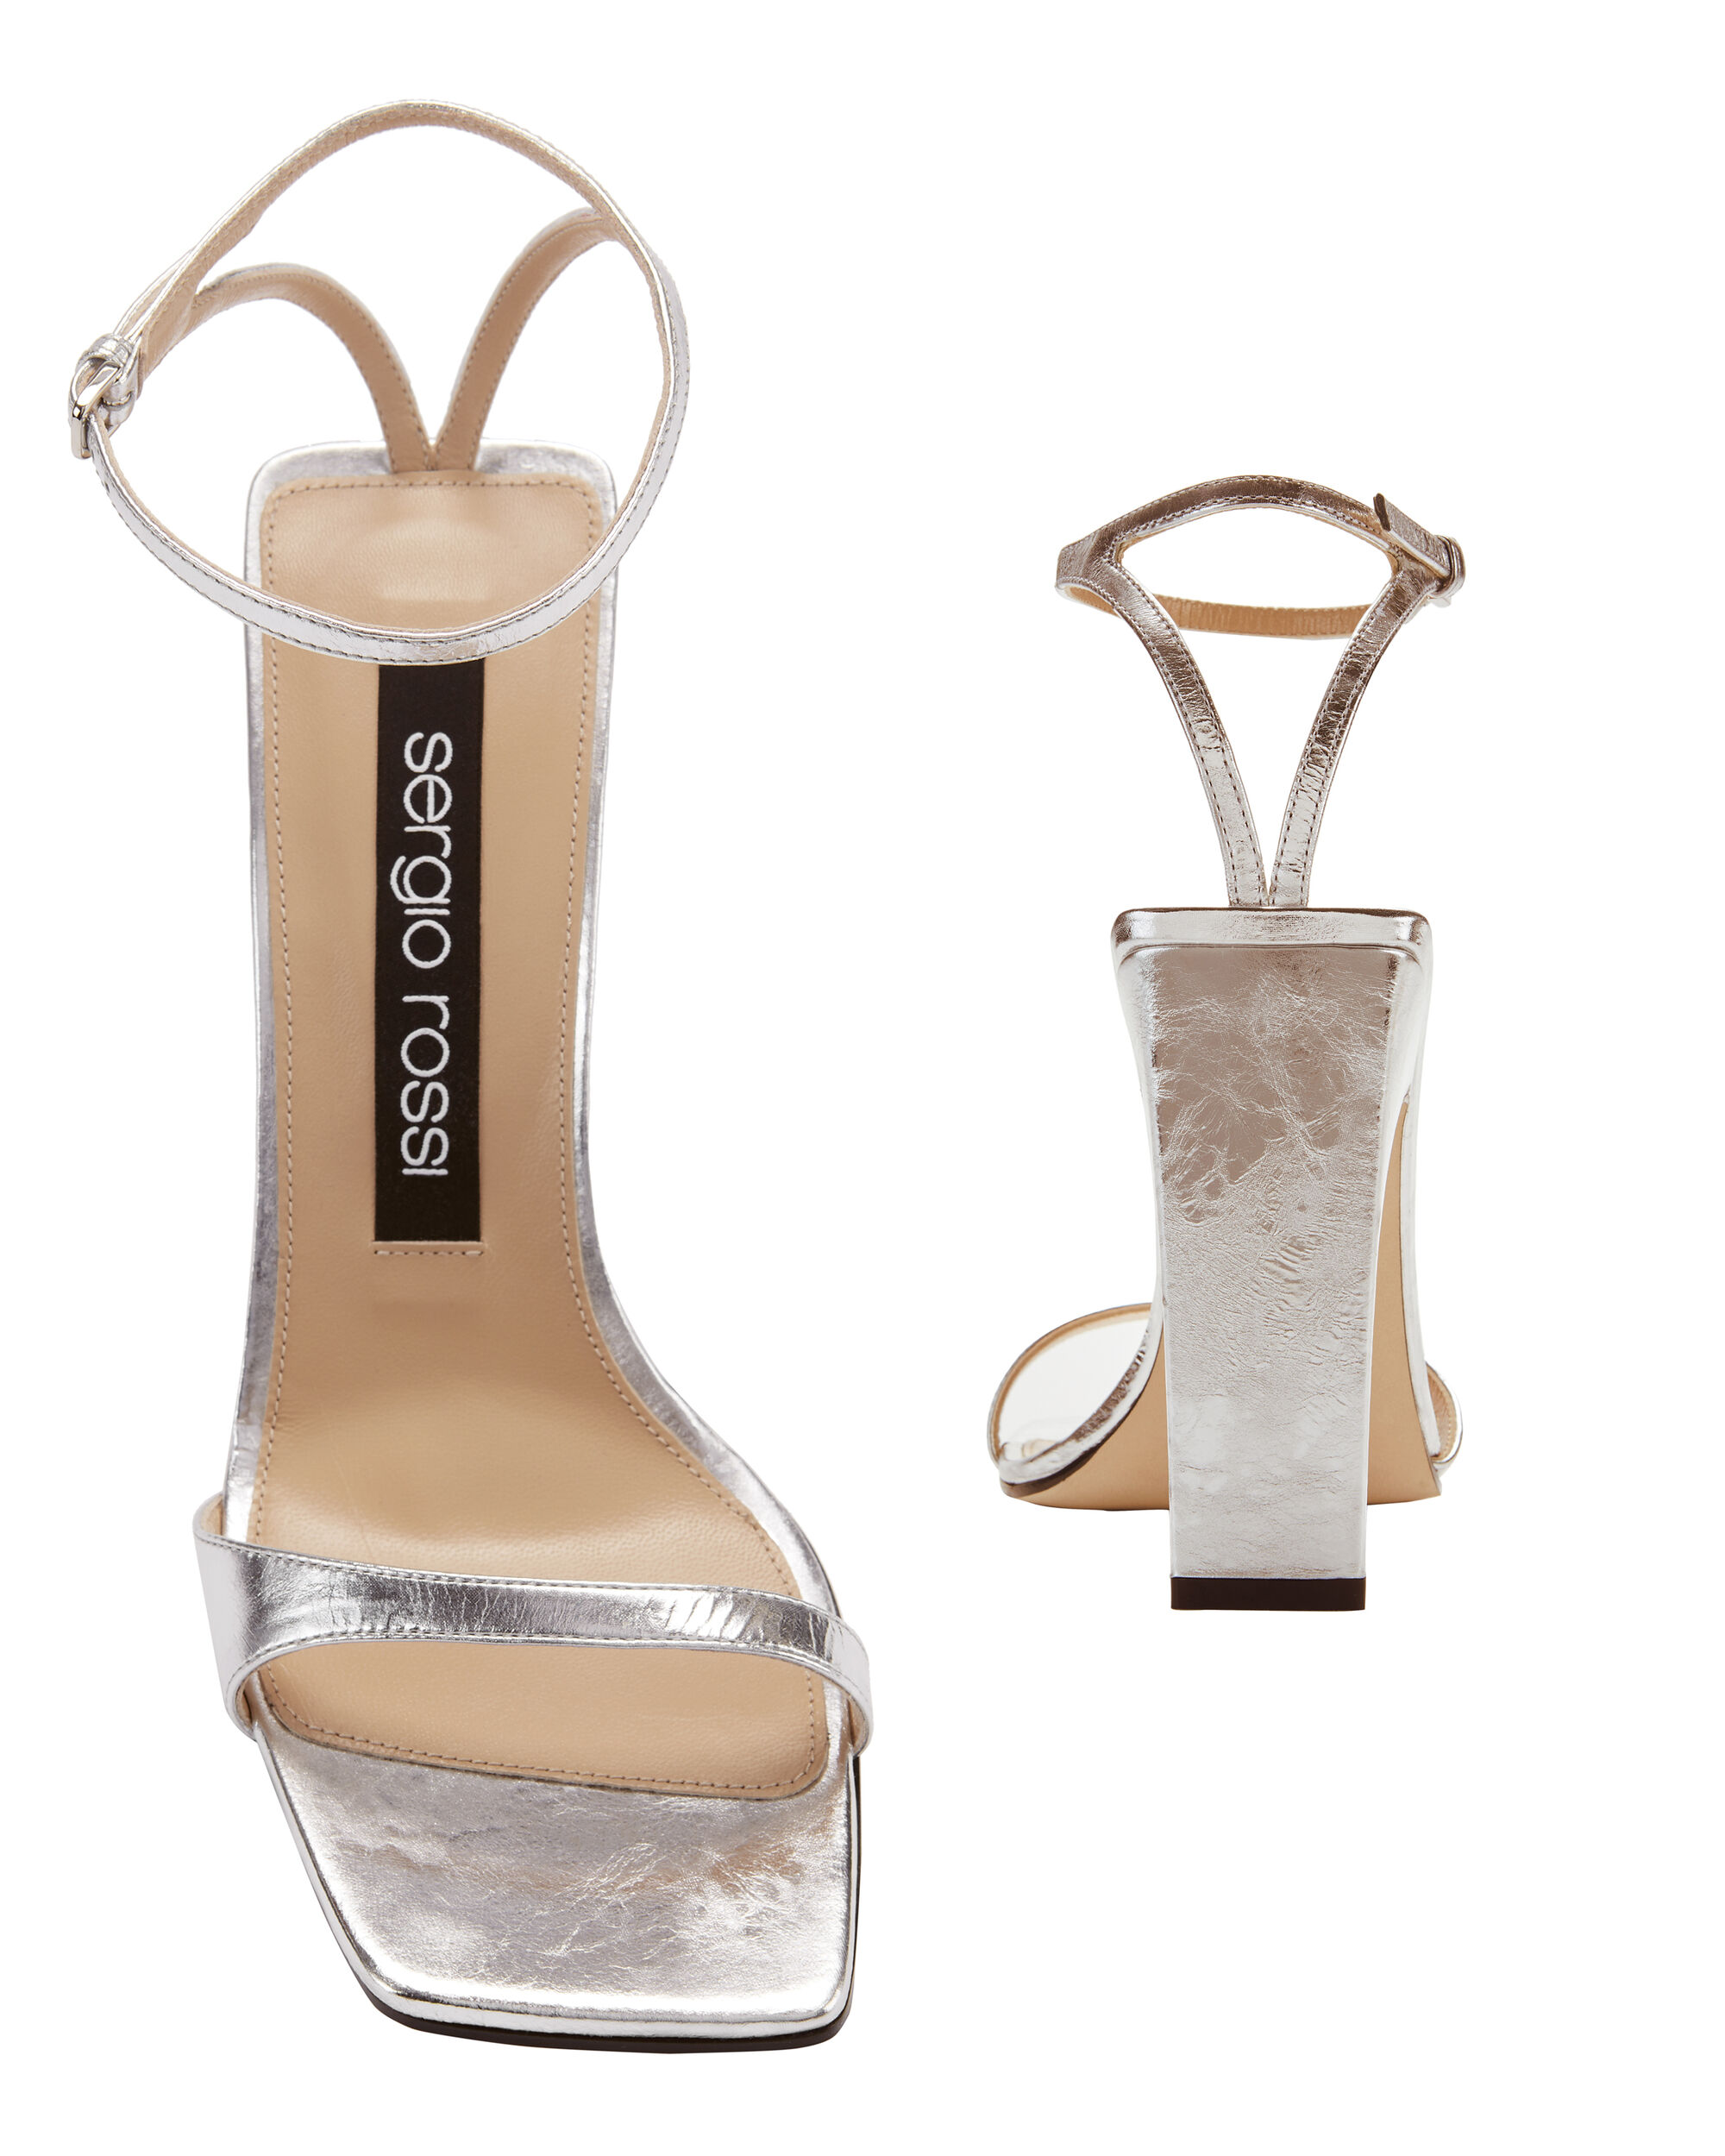 sr1 Silver Laminated Leather Sandals, METALLIC, hi-res